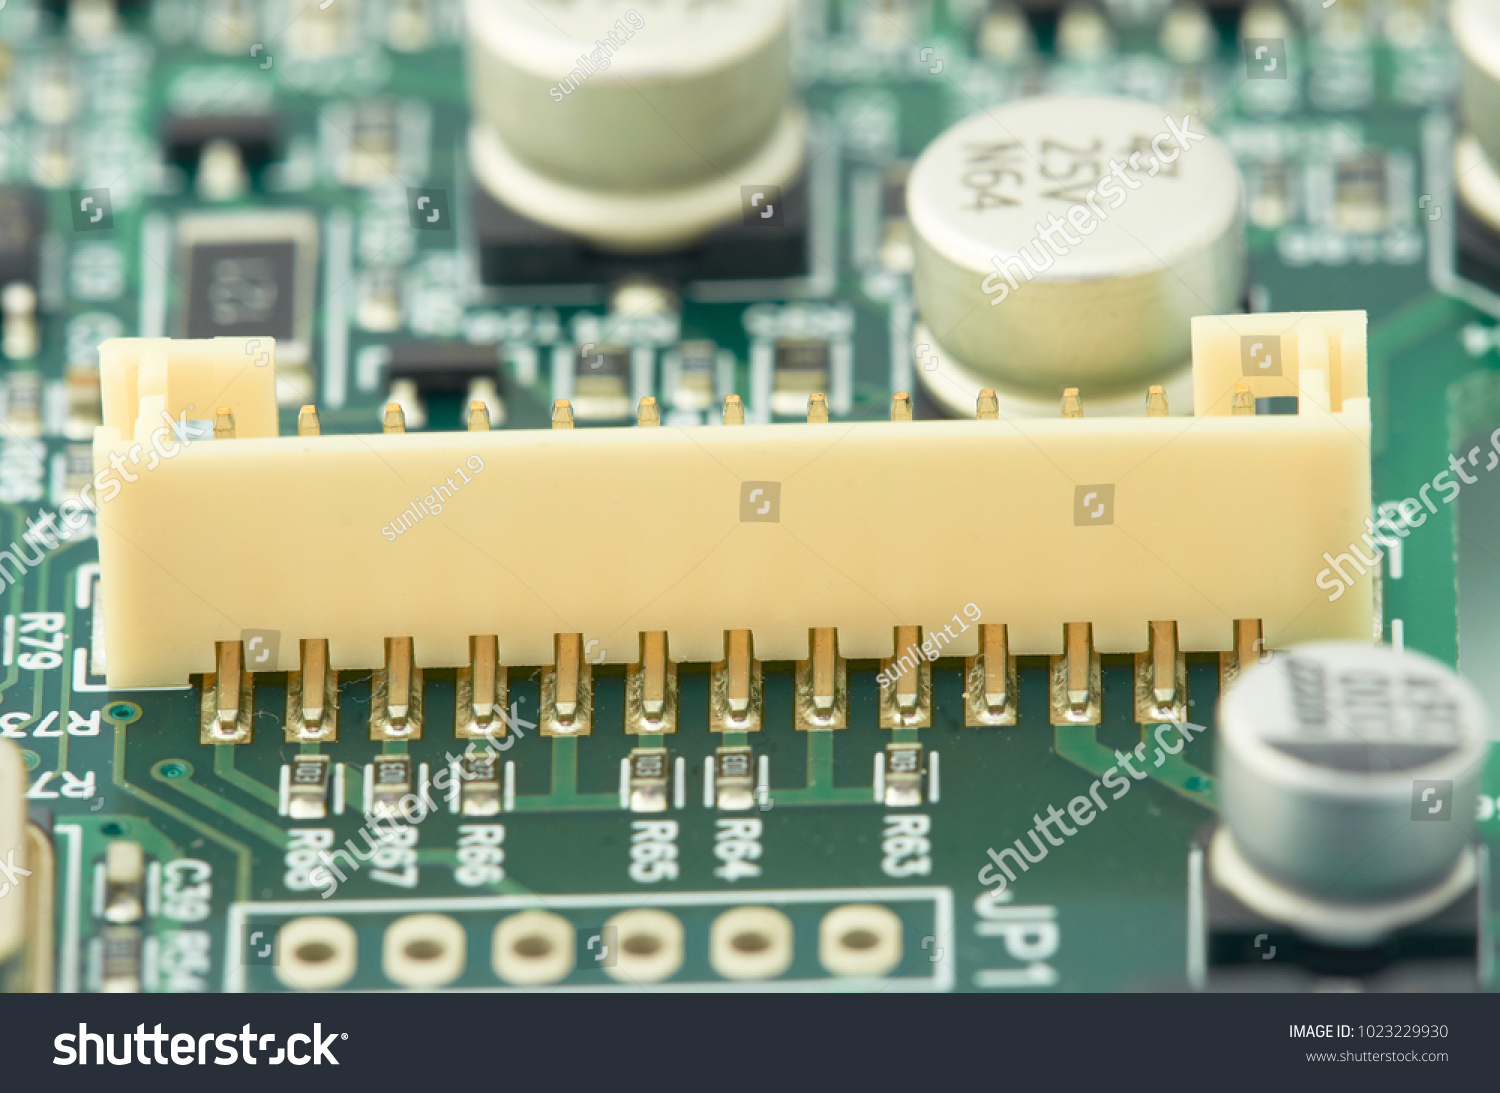 Stockfoto Printed Circuit Board Pcb Used In Industrial Electronic Stock Photo Edit Now With Processor Microchips And Glowing